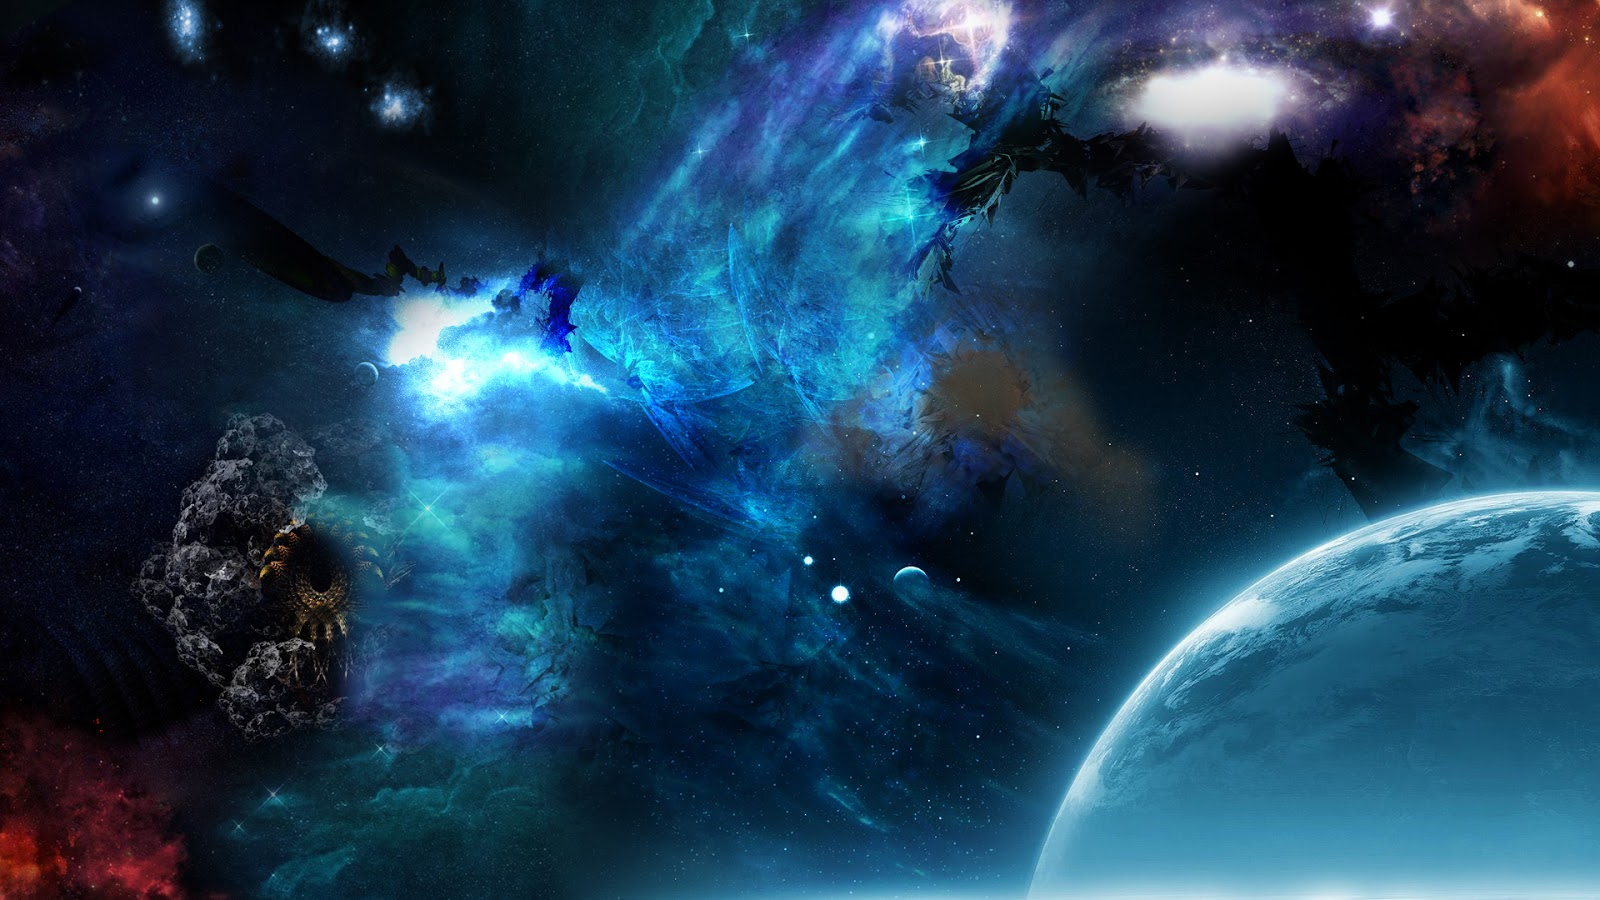 Wallpapers - Free Wallpapers | Desktop Backgrounds: Beautiful HD Space ...